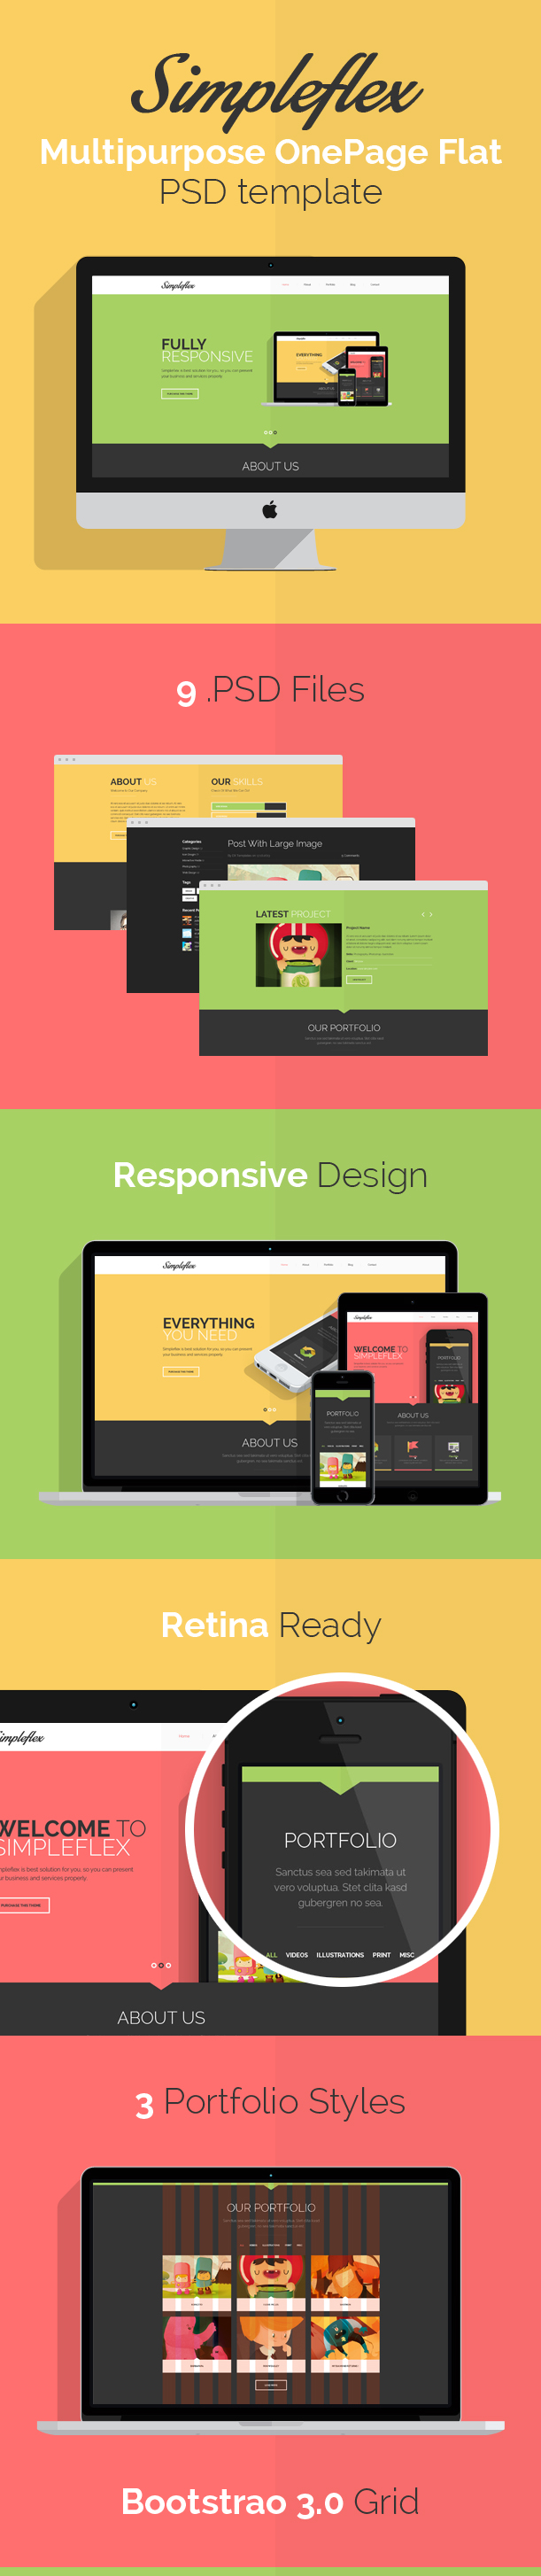 Simpleflex - OnePage & MultiPage Flat PSD template